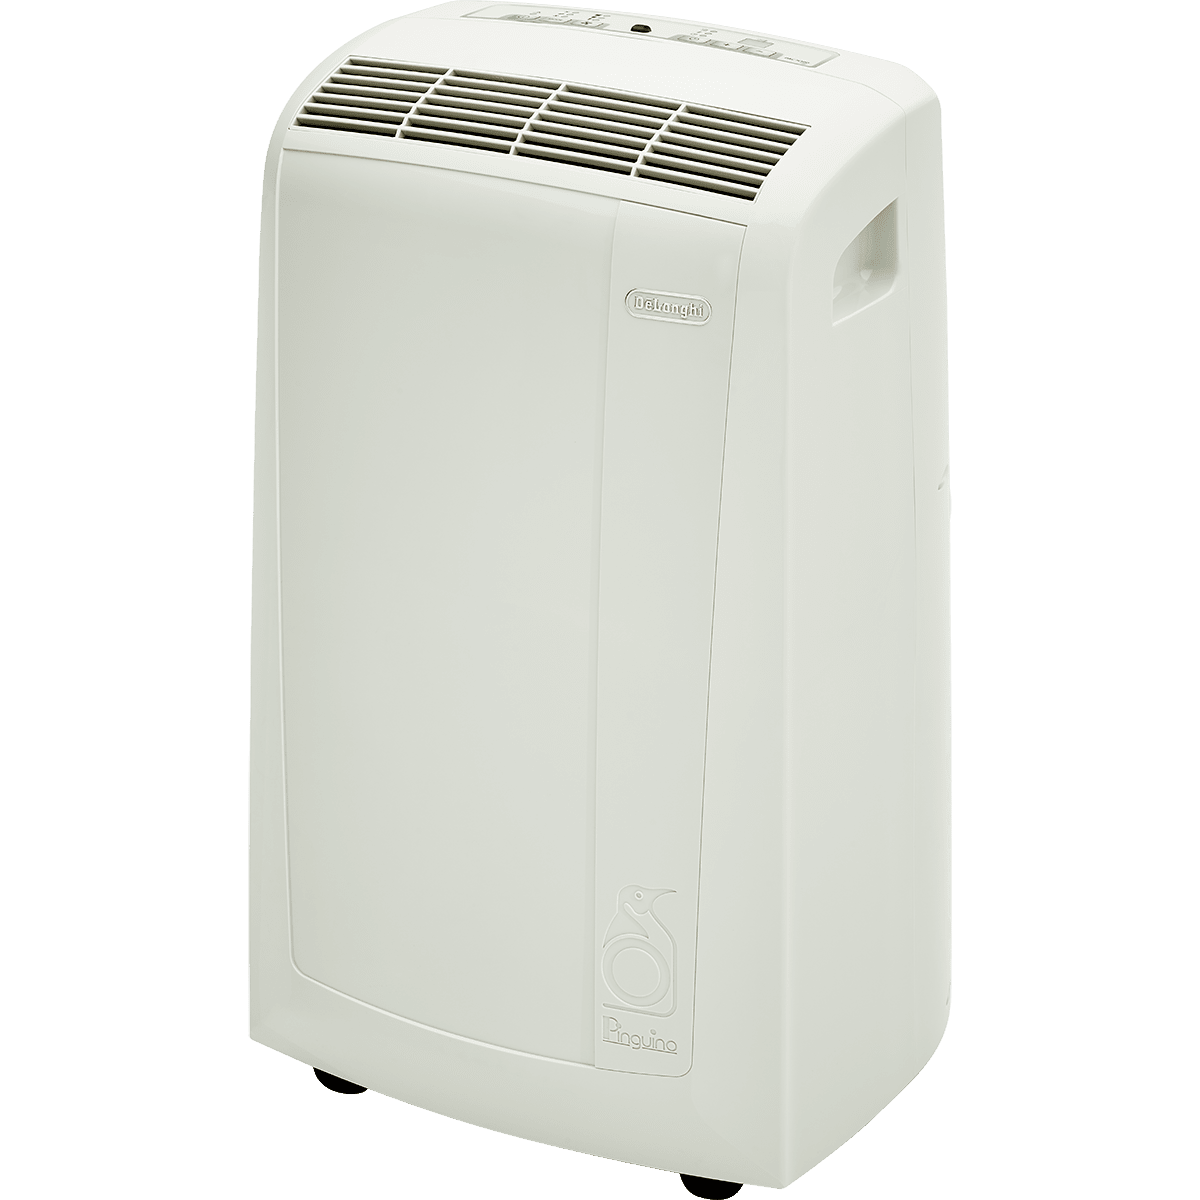 Delonghi PAC N100E 10,000 BTU Portable Air Conditioner de2633